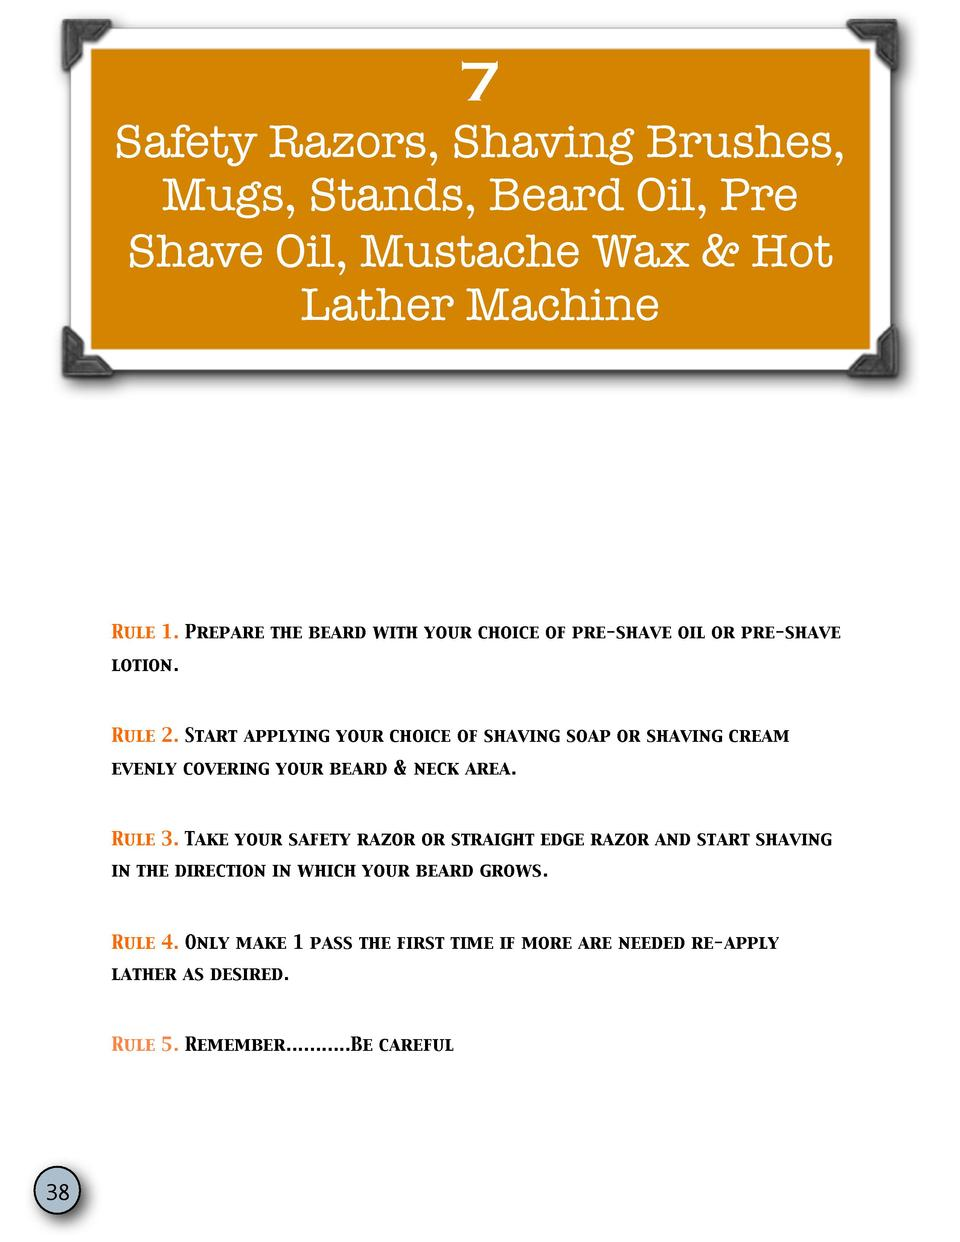 7 Safety Razors, Shaving Brushes, Mugs, Stands, Beard Oil, Pre Shave Oil, Mustache Wax   Hot Lather Machine  Rule 1. Prepa...